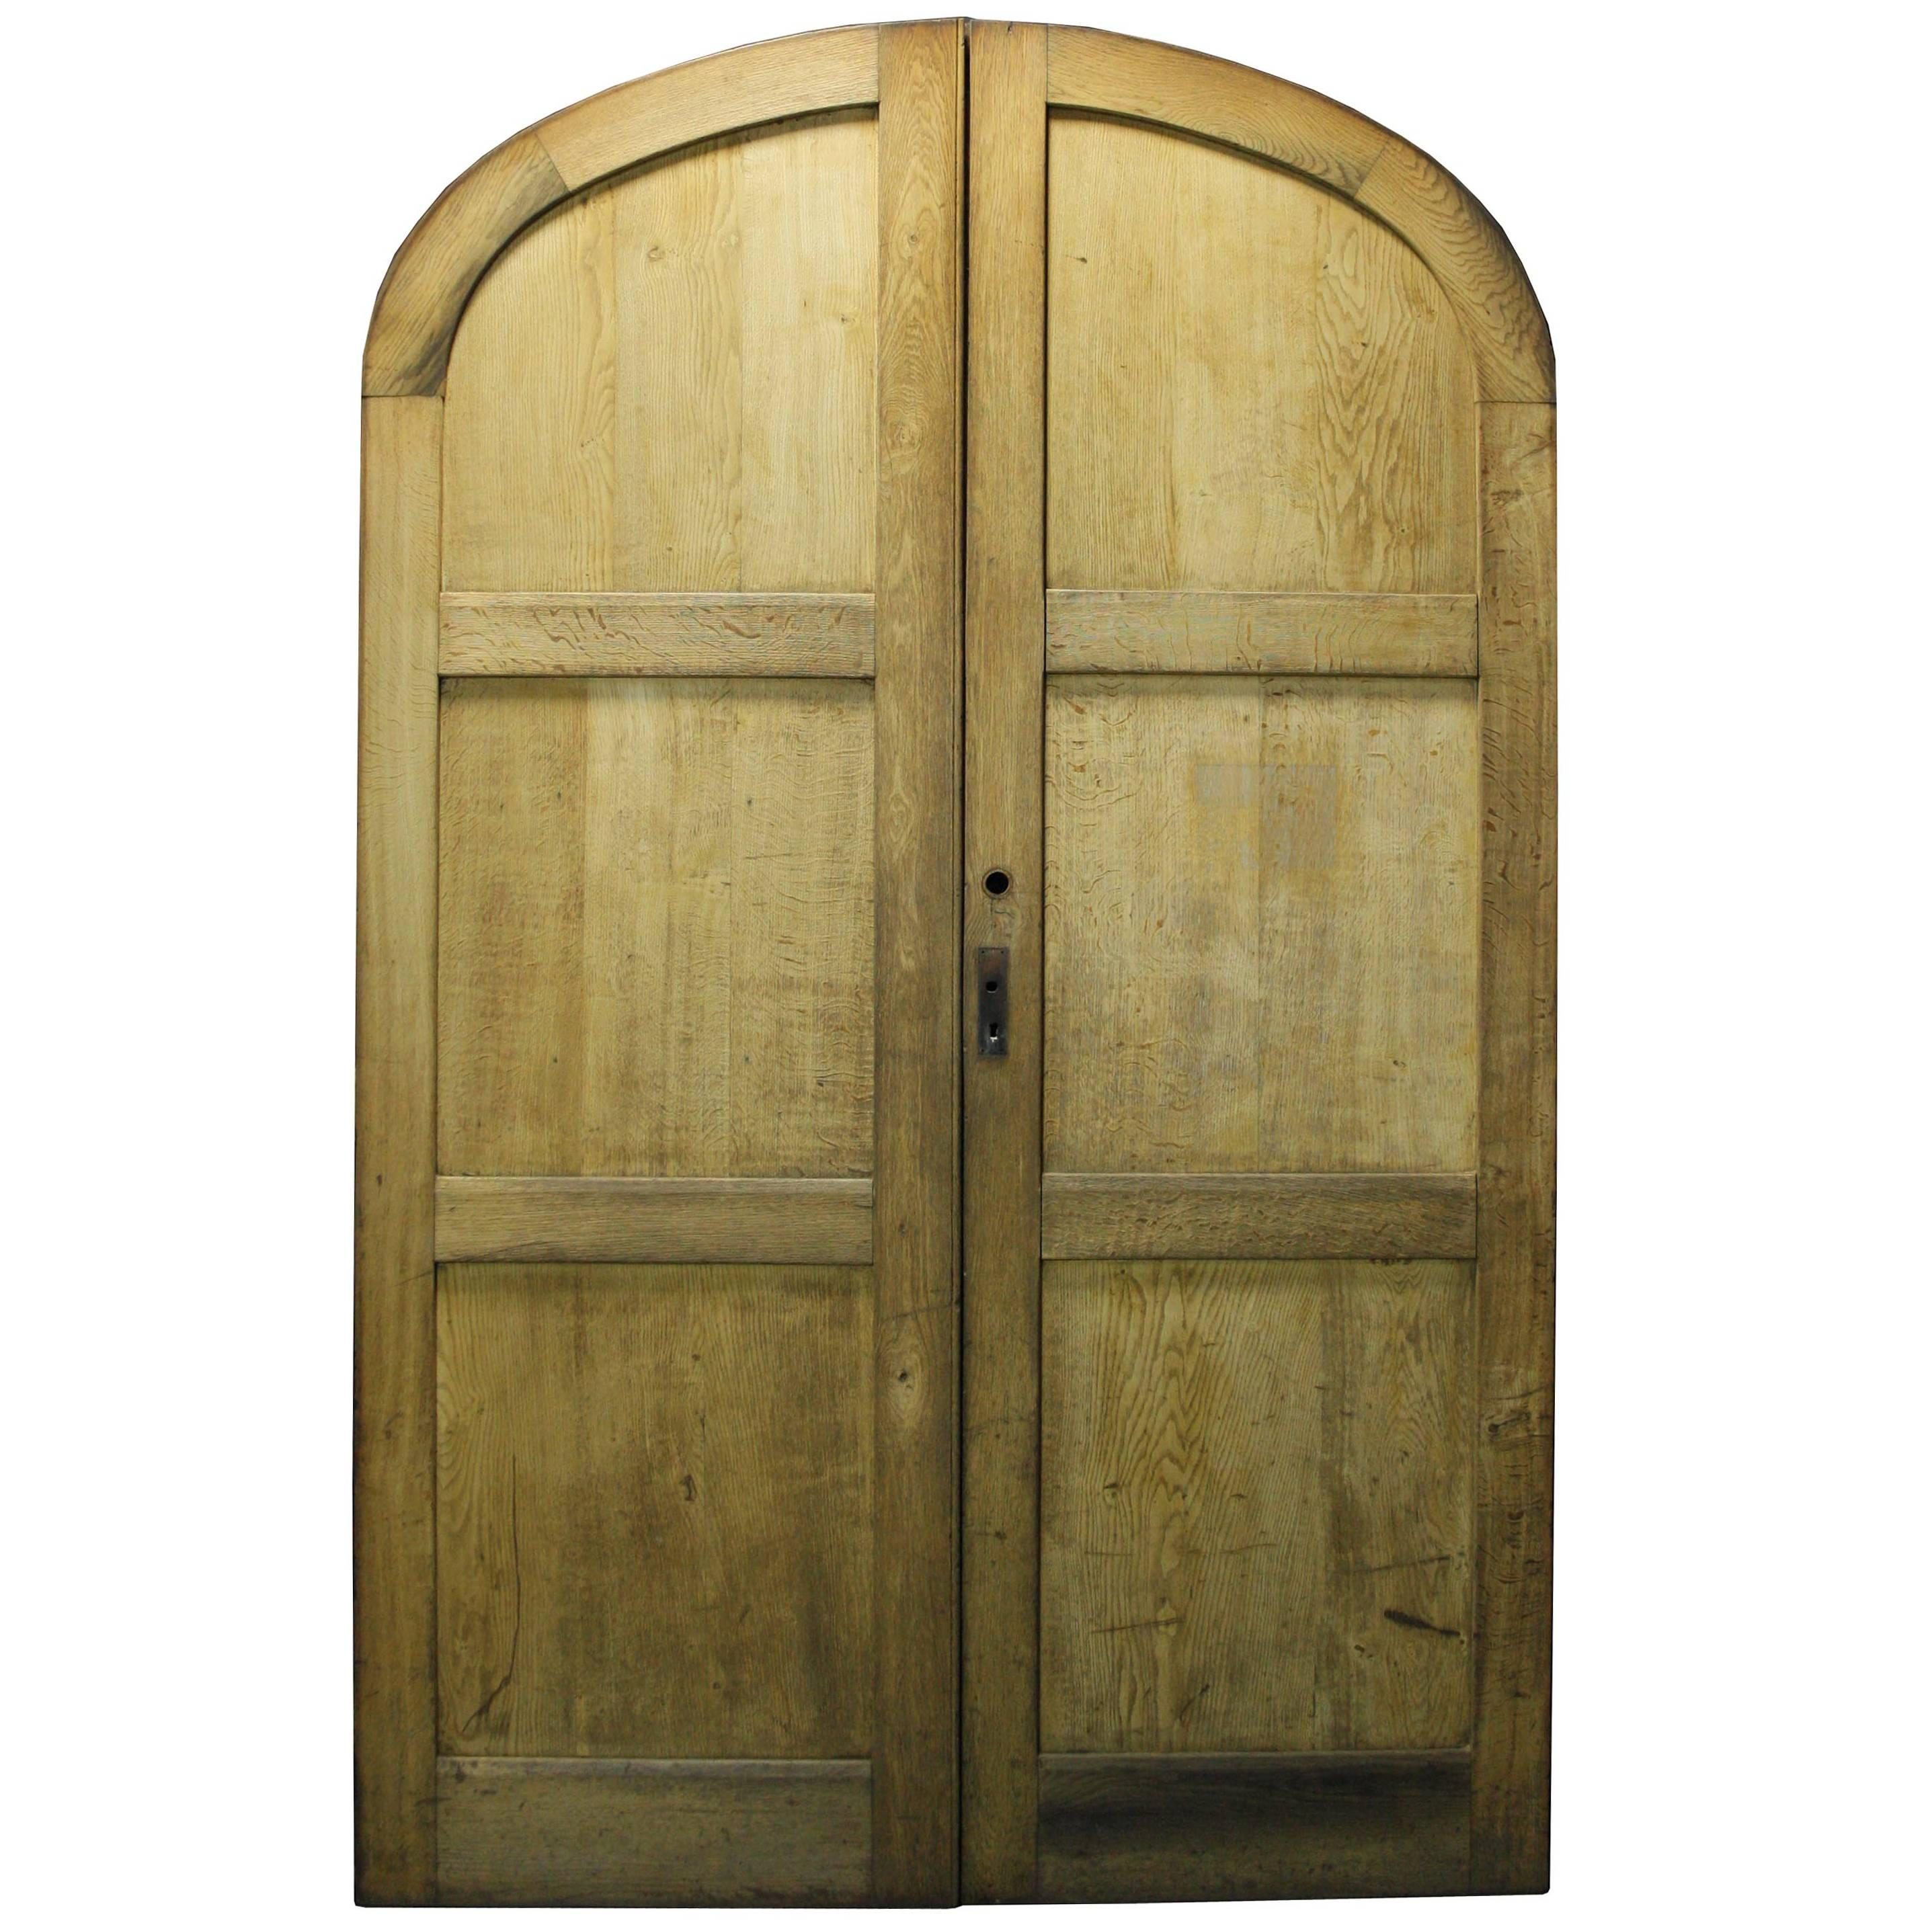 Pair of 1920s Exterior Arched Oak Double Doors  sc 1 st  1stDibs & 1920s Pair of Fireproof Kalamein Doors with Five Panels by Coburn ...